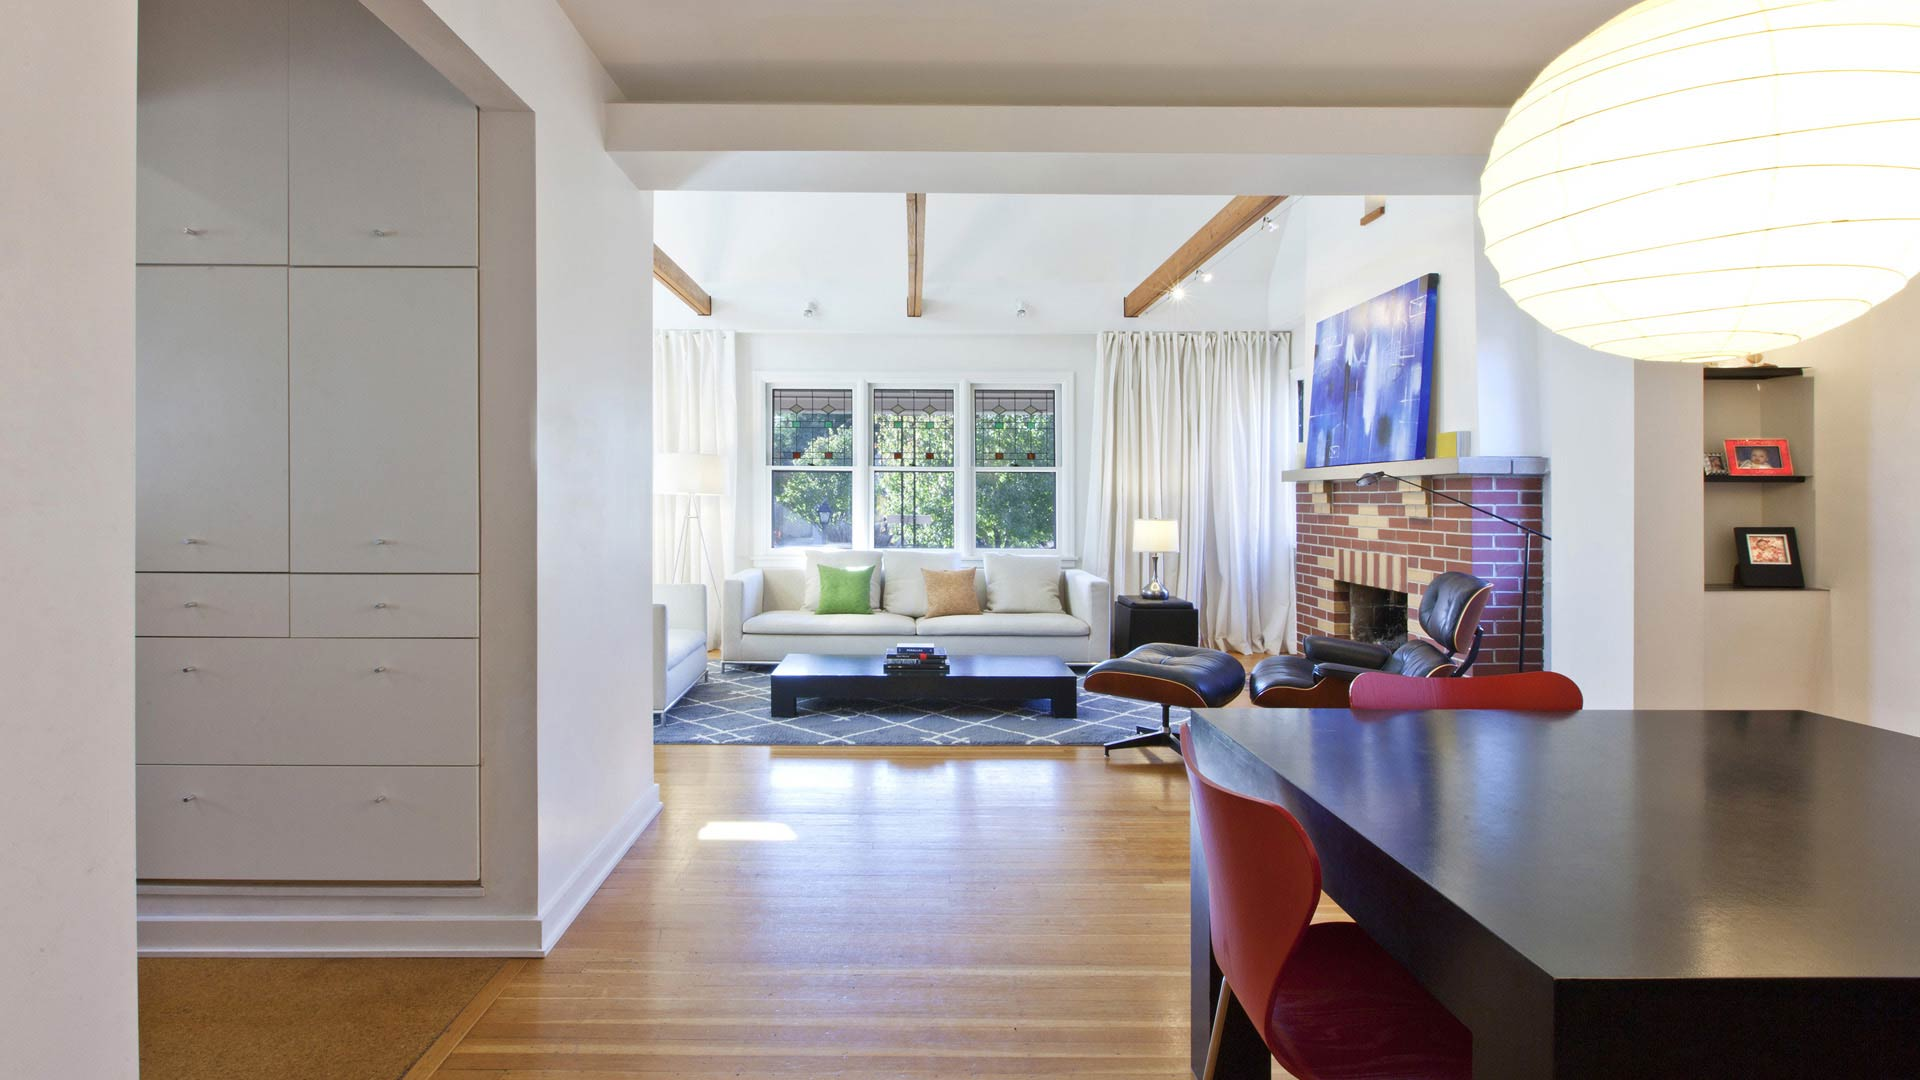 View of Dining and Living Rooms - Classic Irvington Tudor Remodel - Indianapolis, IN